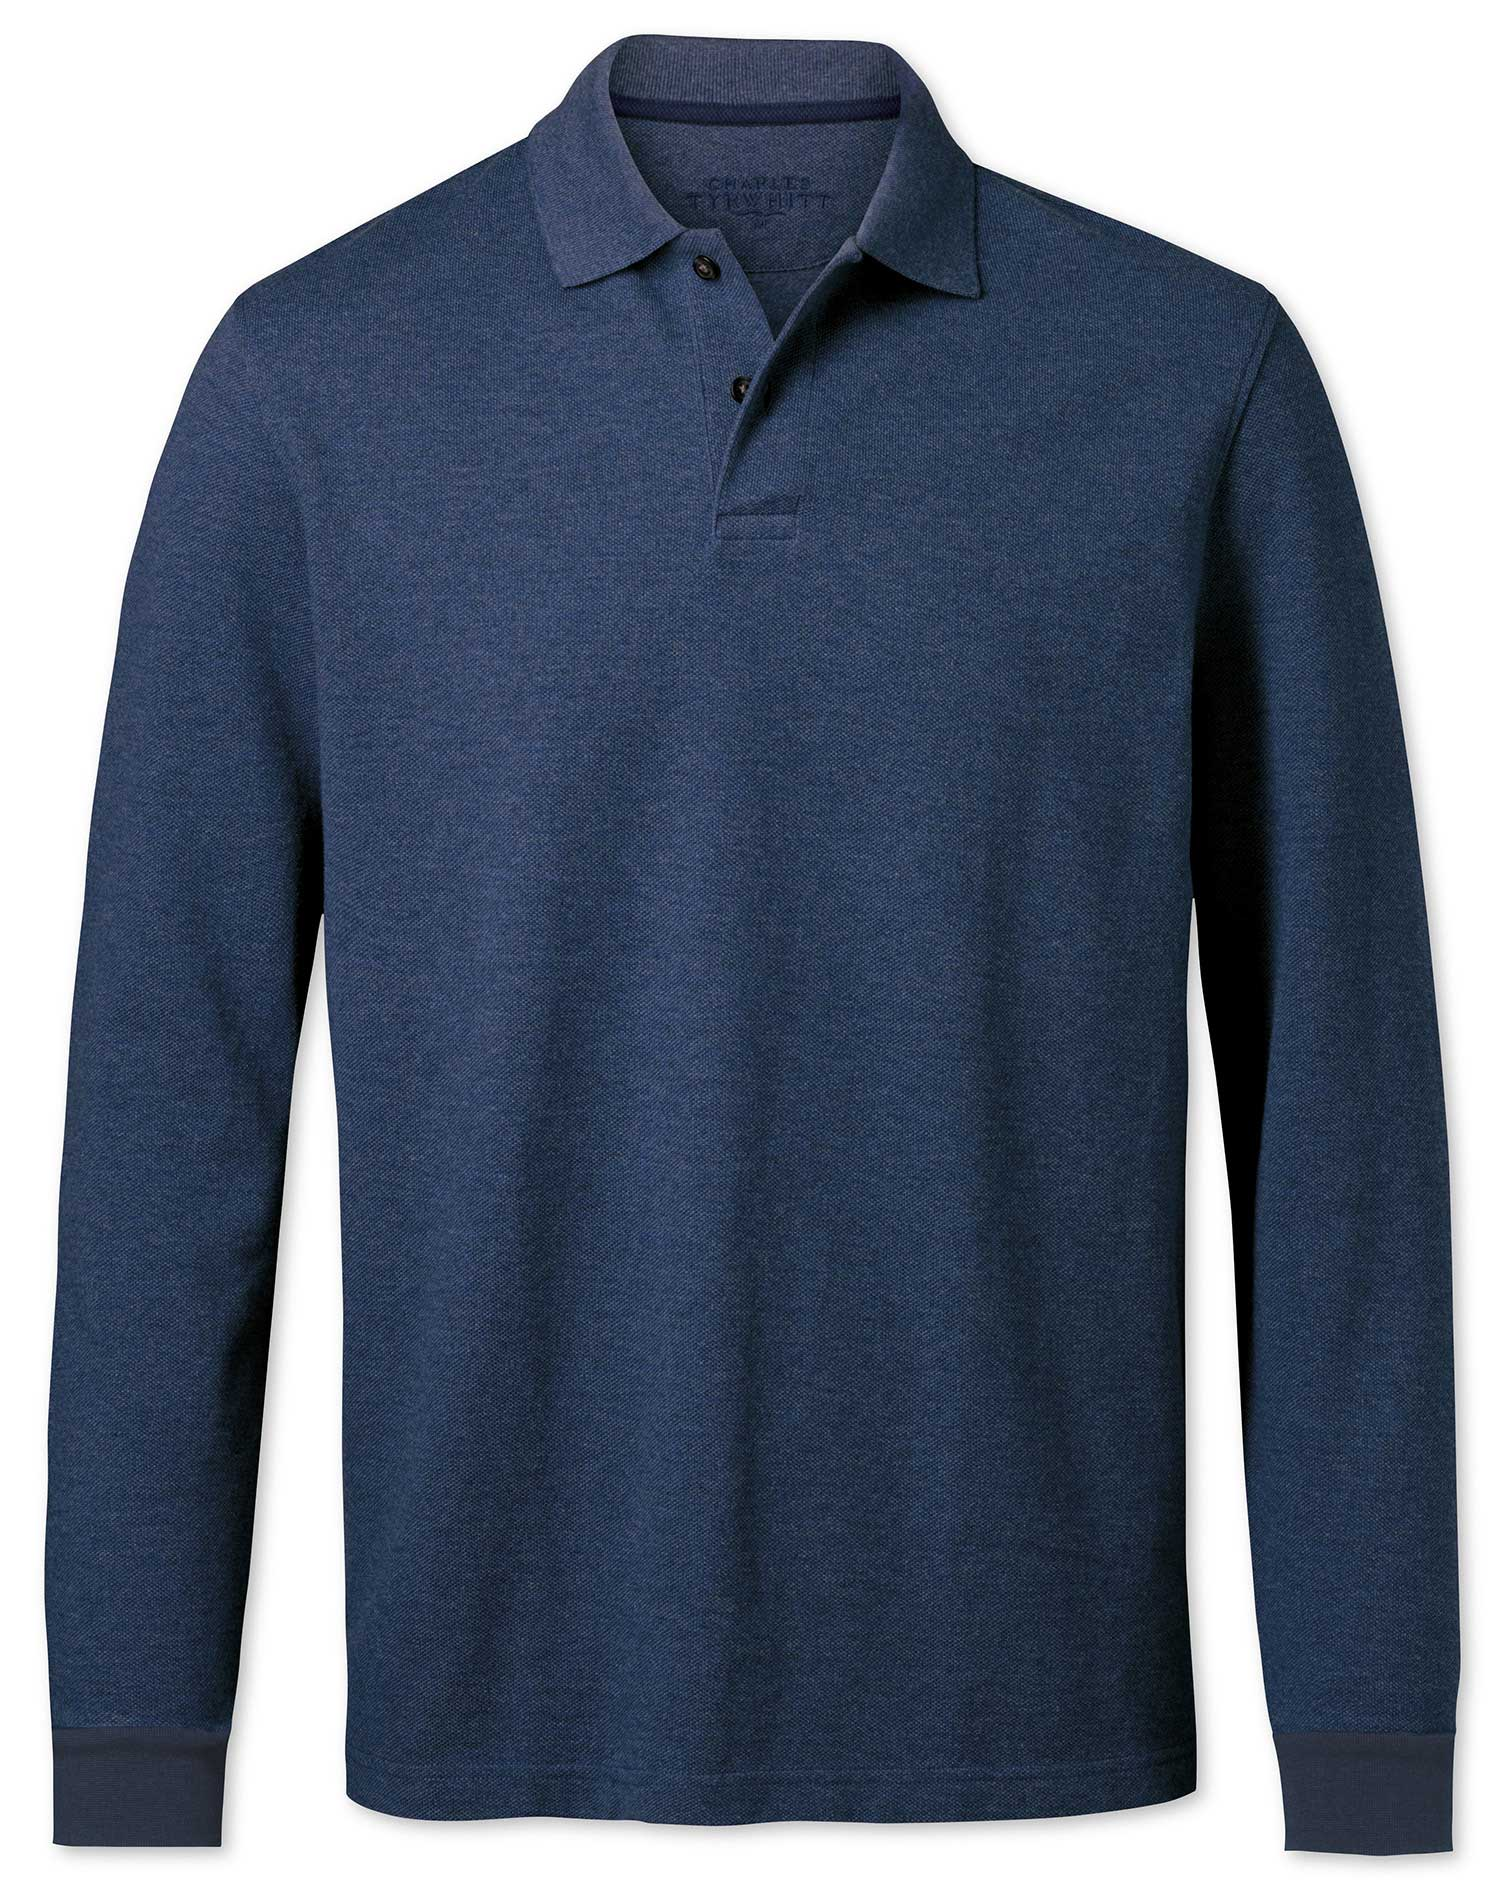 Indigo Melange Pique Long Sleeve Cotton Polo Size XL by Charles Tyrwhitt